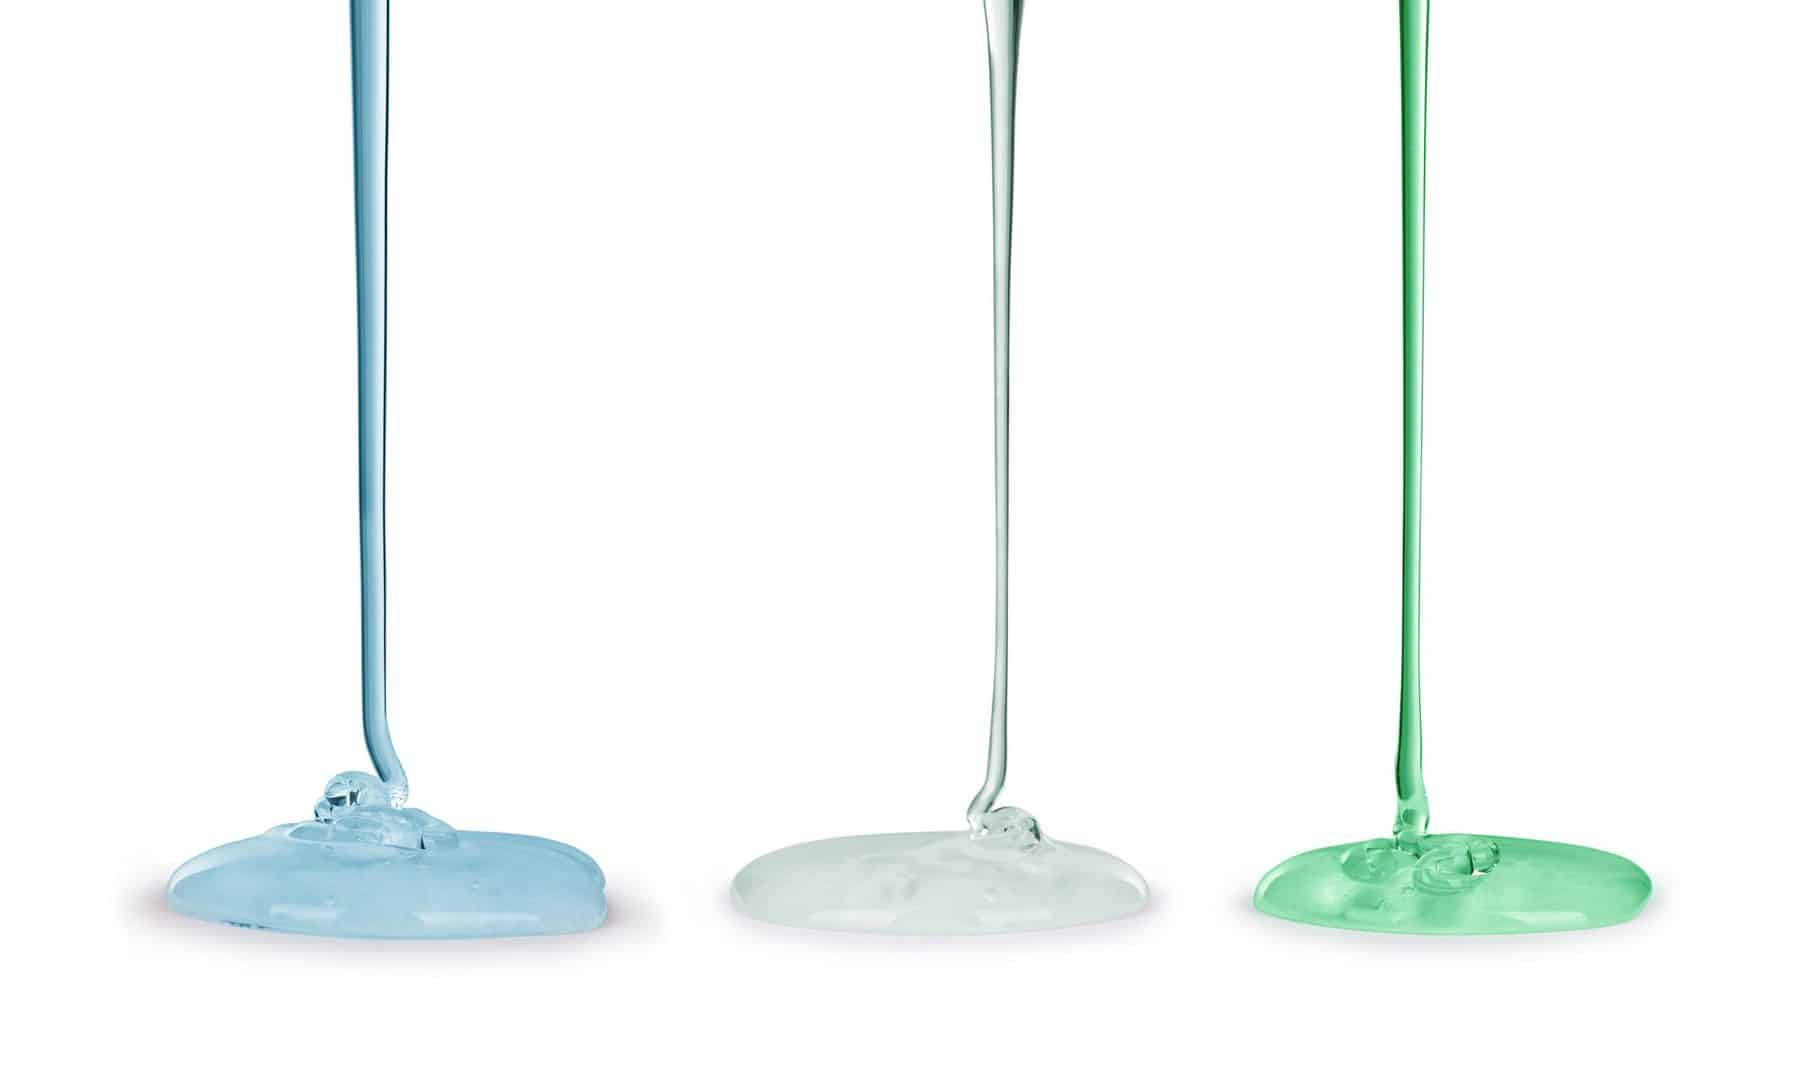 Viscometer or Rheometer – which is best for me?